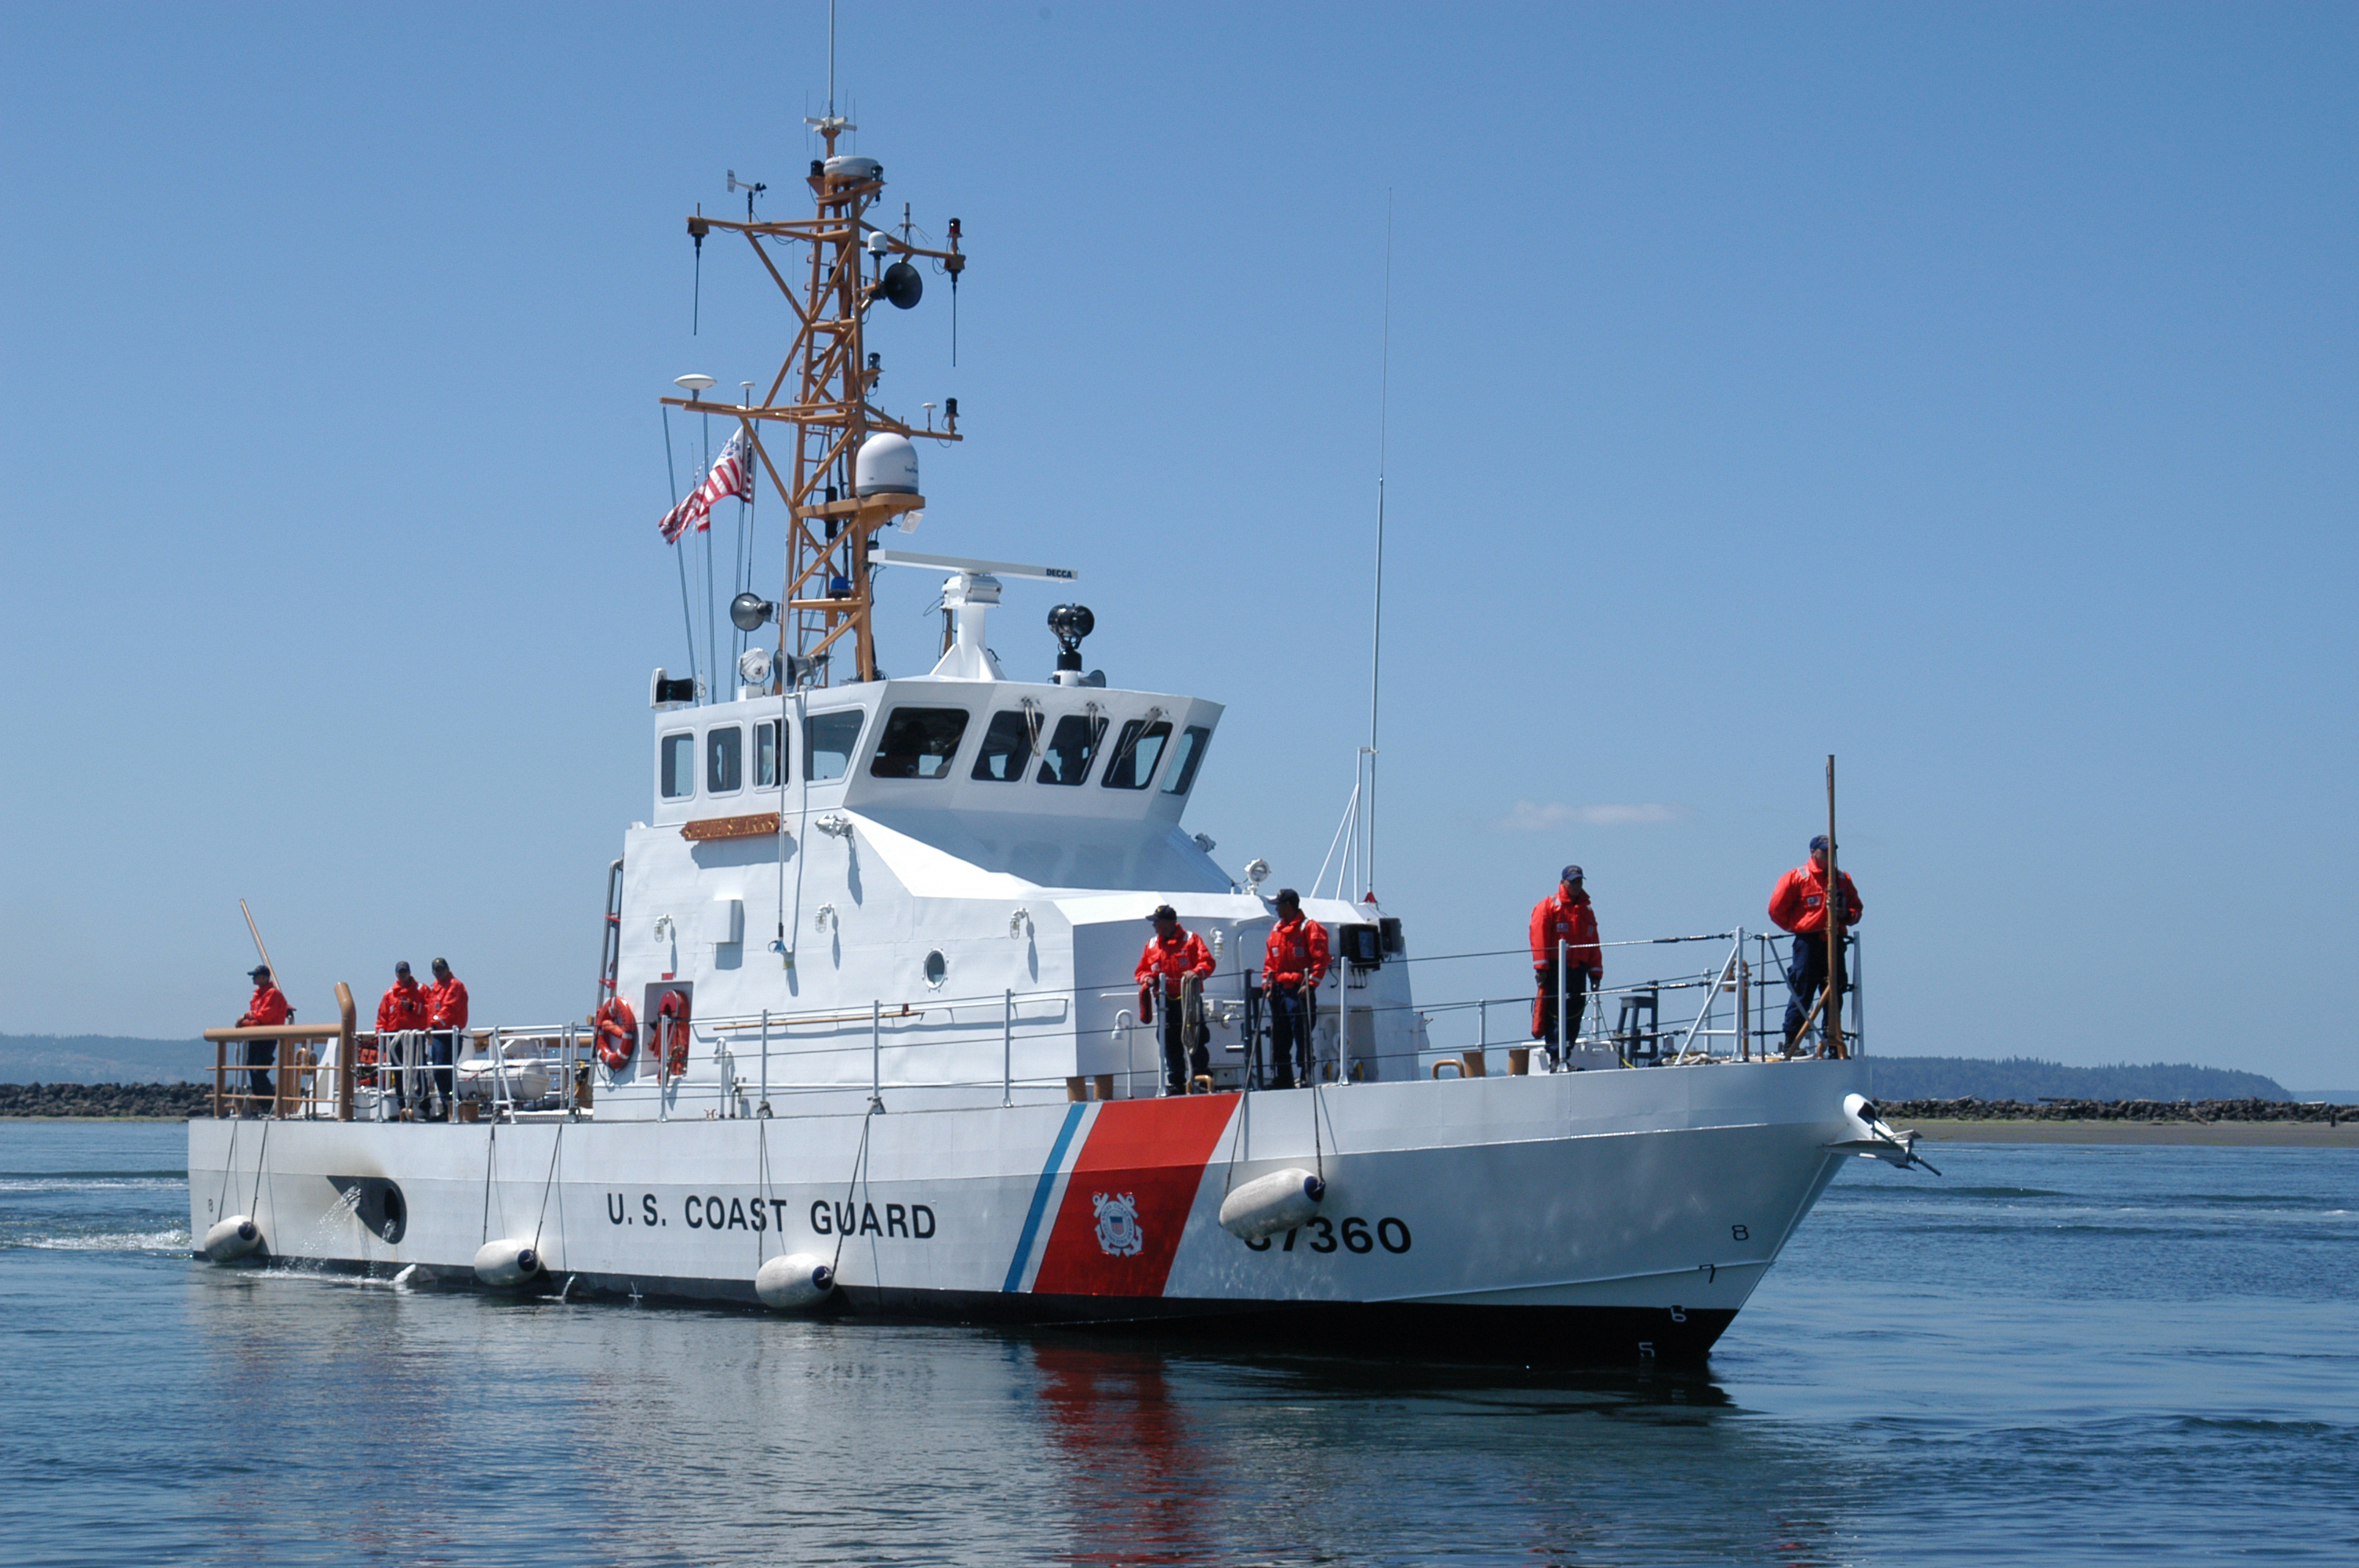 coast guard cutter decision problem Case 2: coast guard cutter decision problem you are the captain of a 200-foot coast guard cutter, with a crew of 16, including officers  your mission is general at-sea search and rescue.